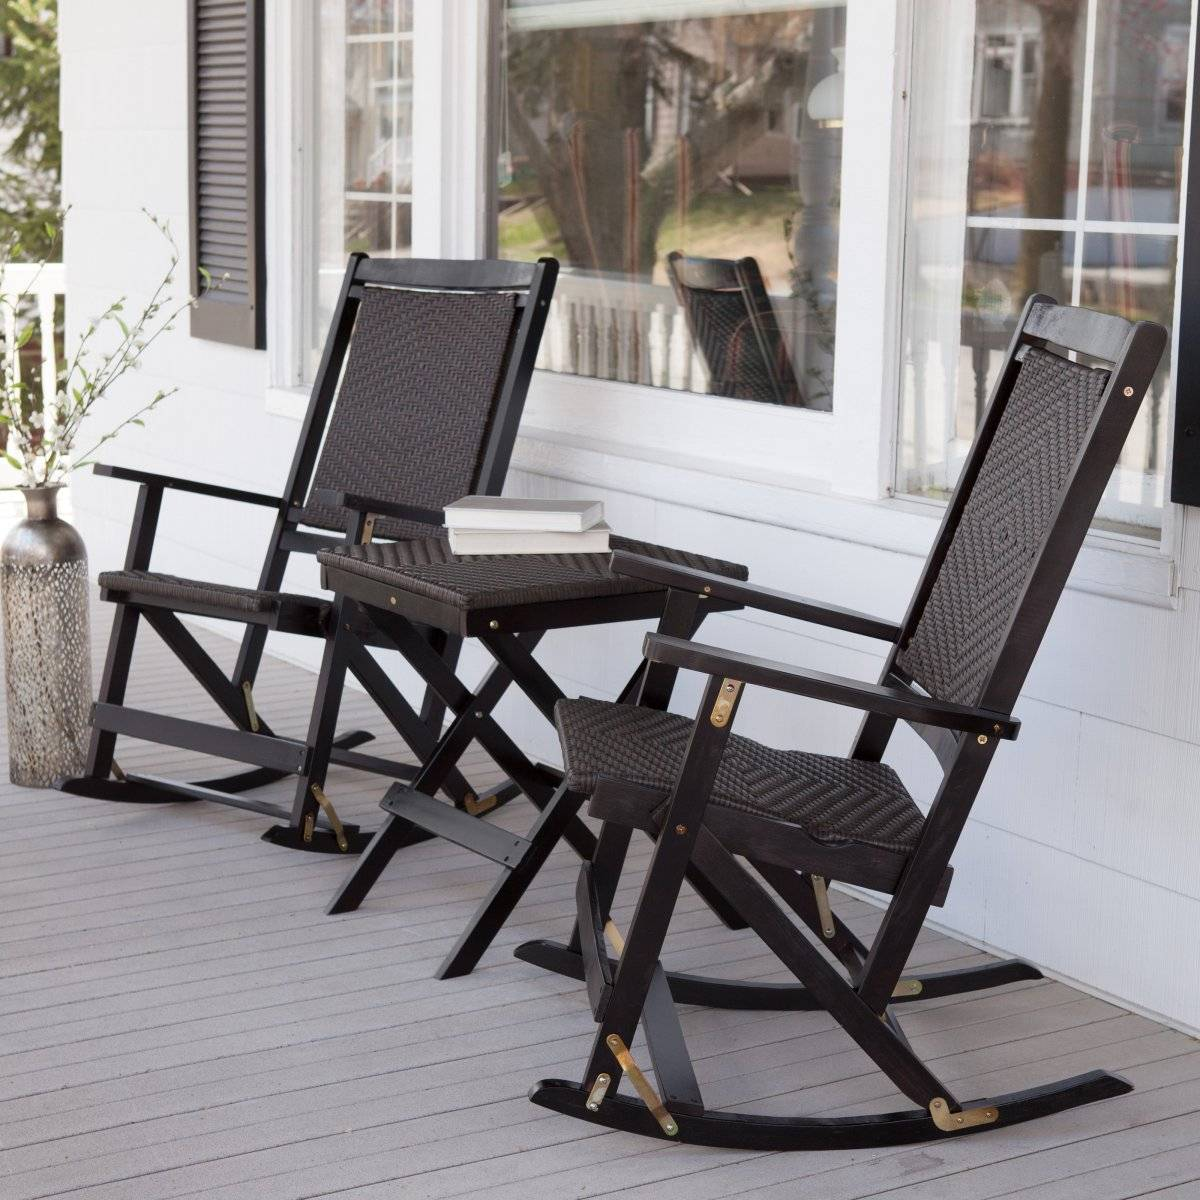 Outdoor Wooden Rocking Chairs 87 Great Diy Decorating Tips For Your Porch And Patio